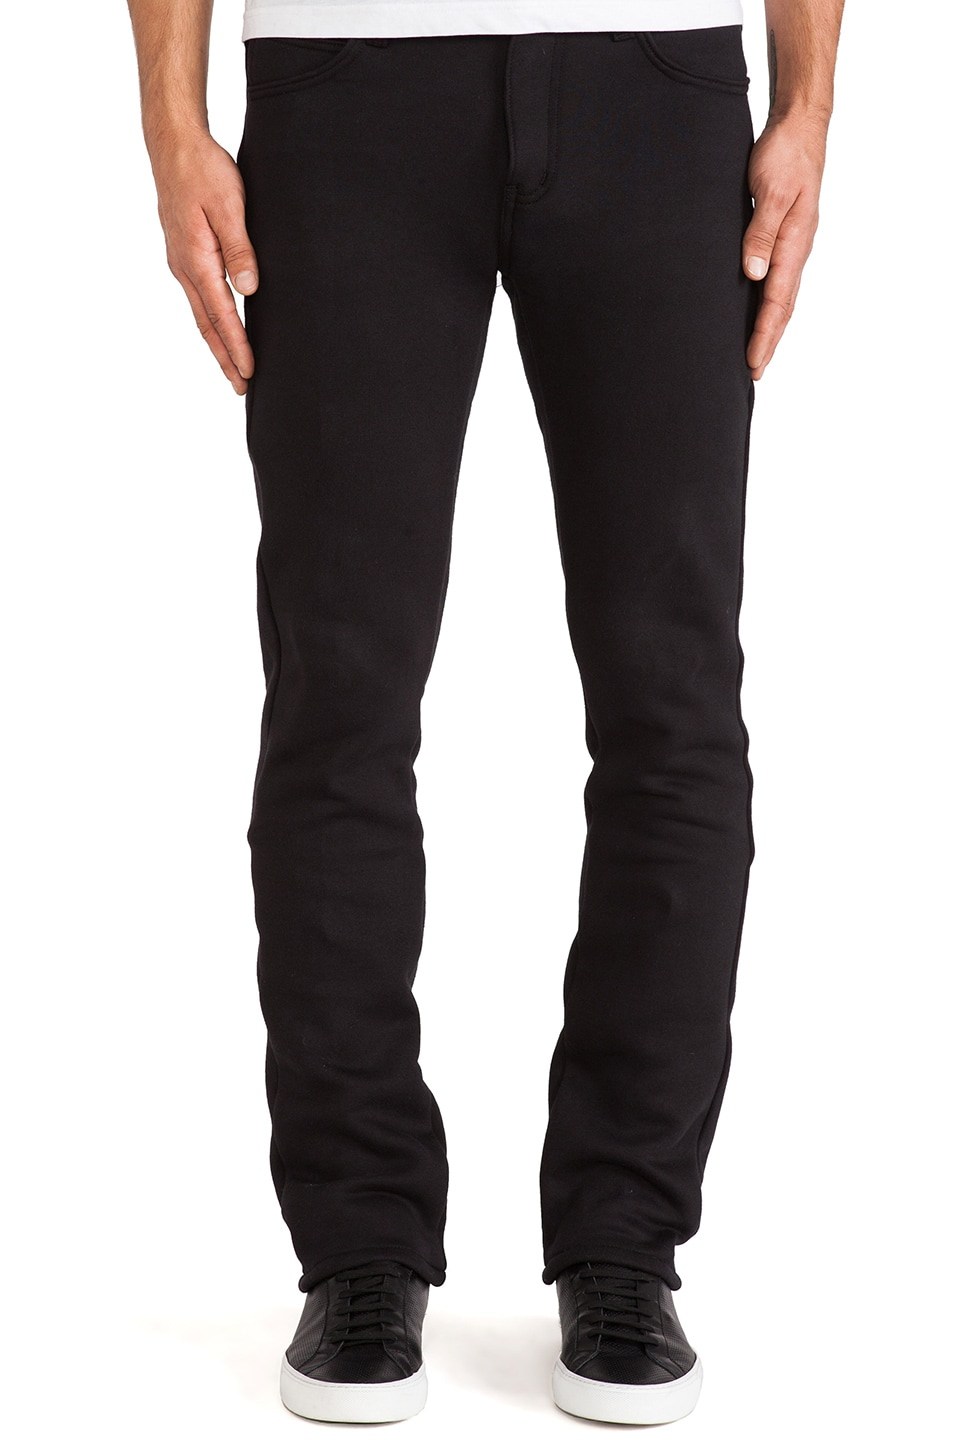 Naked & Famous Denim Sweat Jean 11oz Knit Fleece in Black